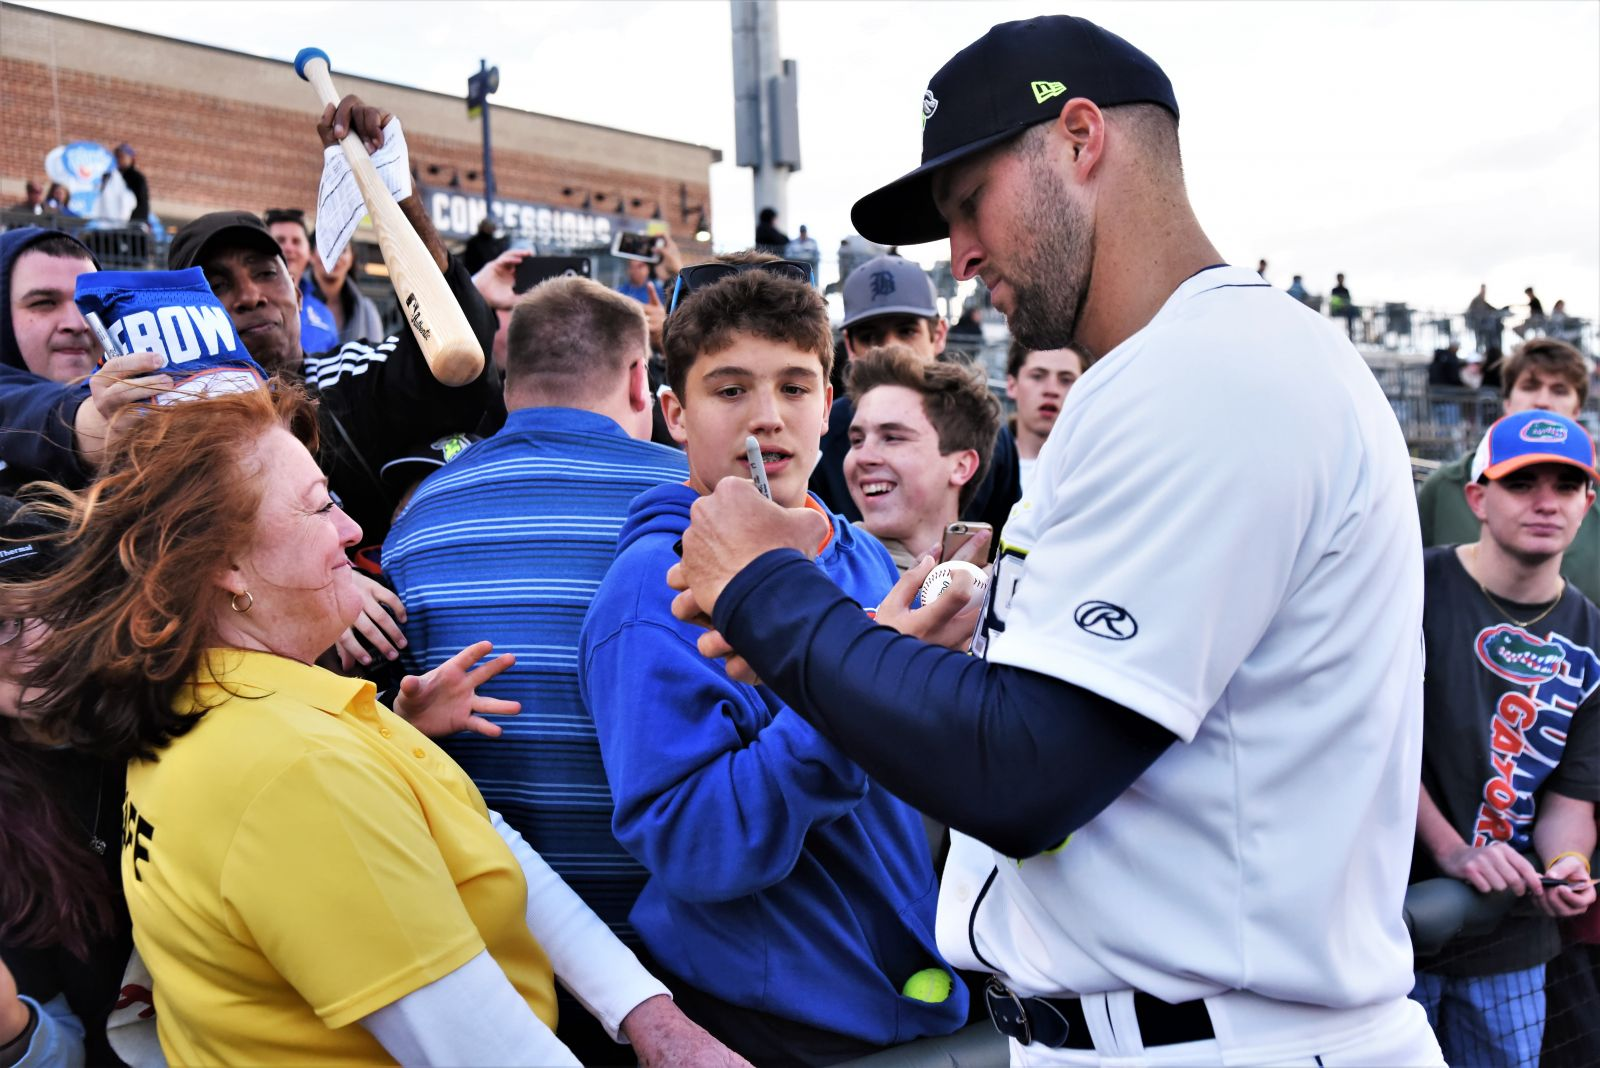 Tim Tebow (right) has become an instant hit with Fireflies' fans as he charts a new career in professional baseball. At the team's April 6 opener, Tebow appeared in midseason form signing autographs on baseballs, bats and T-shirts. (Photo/Chuck Crumbo)(